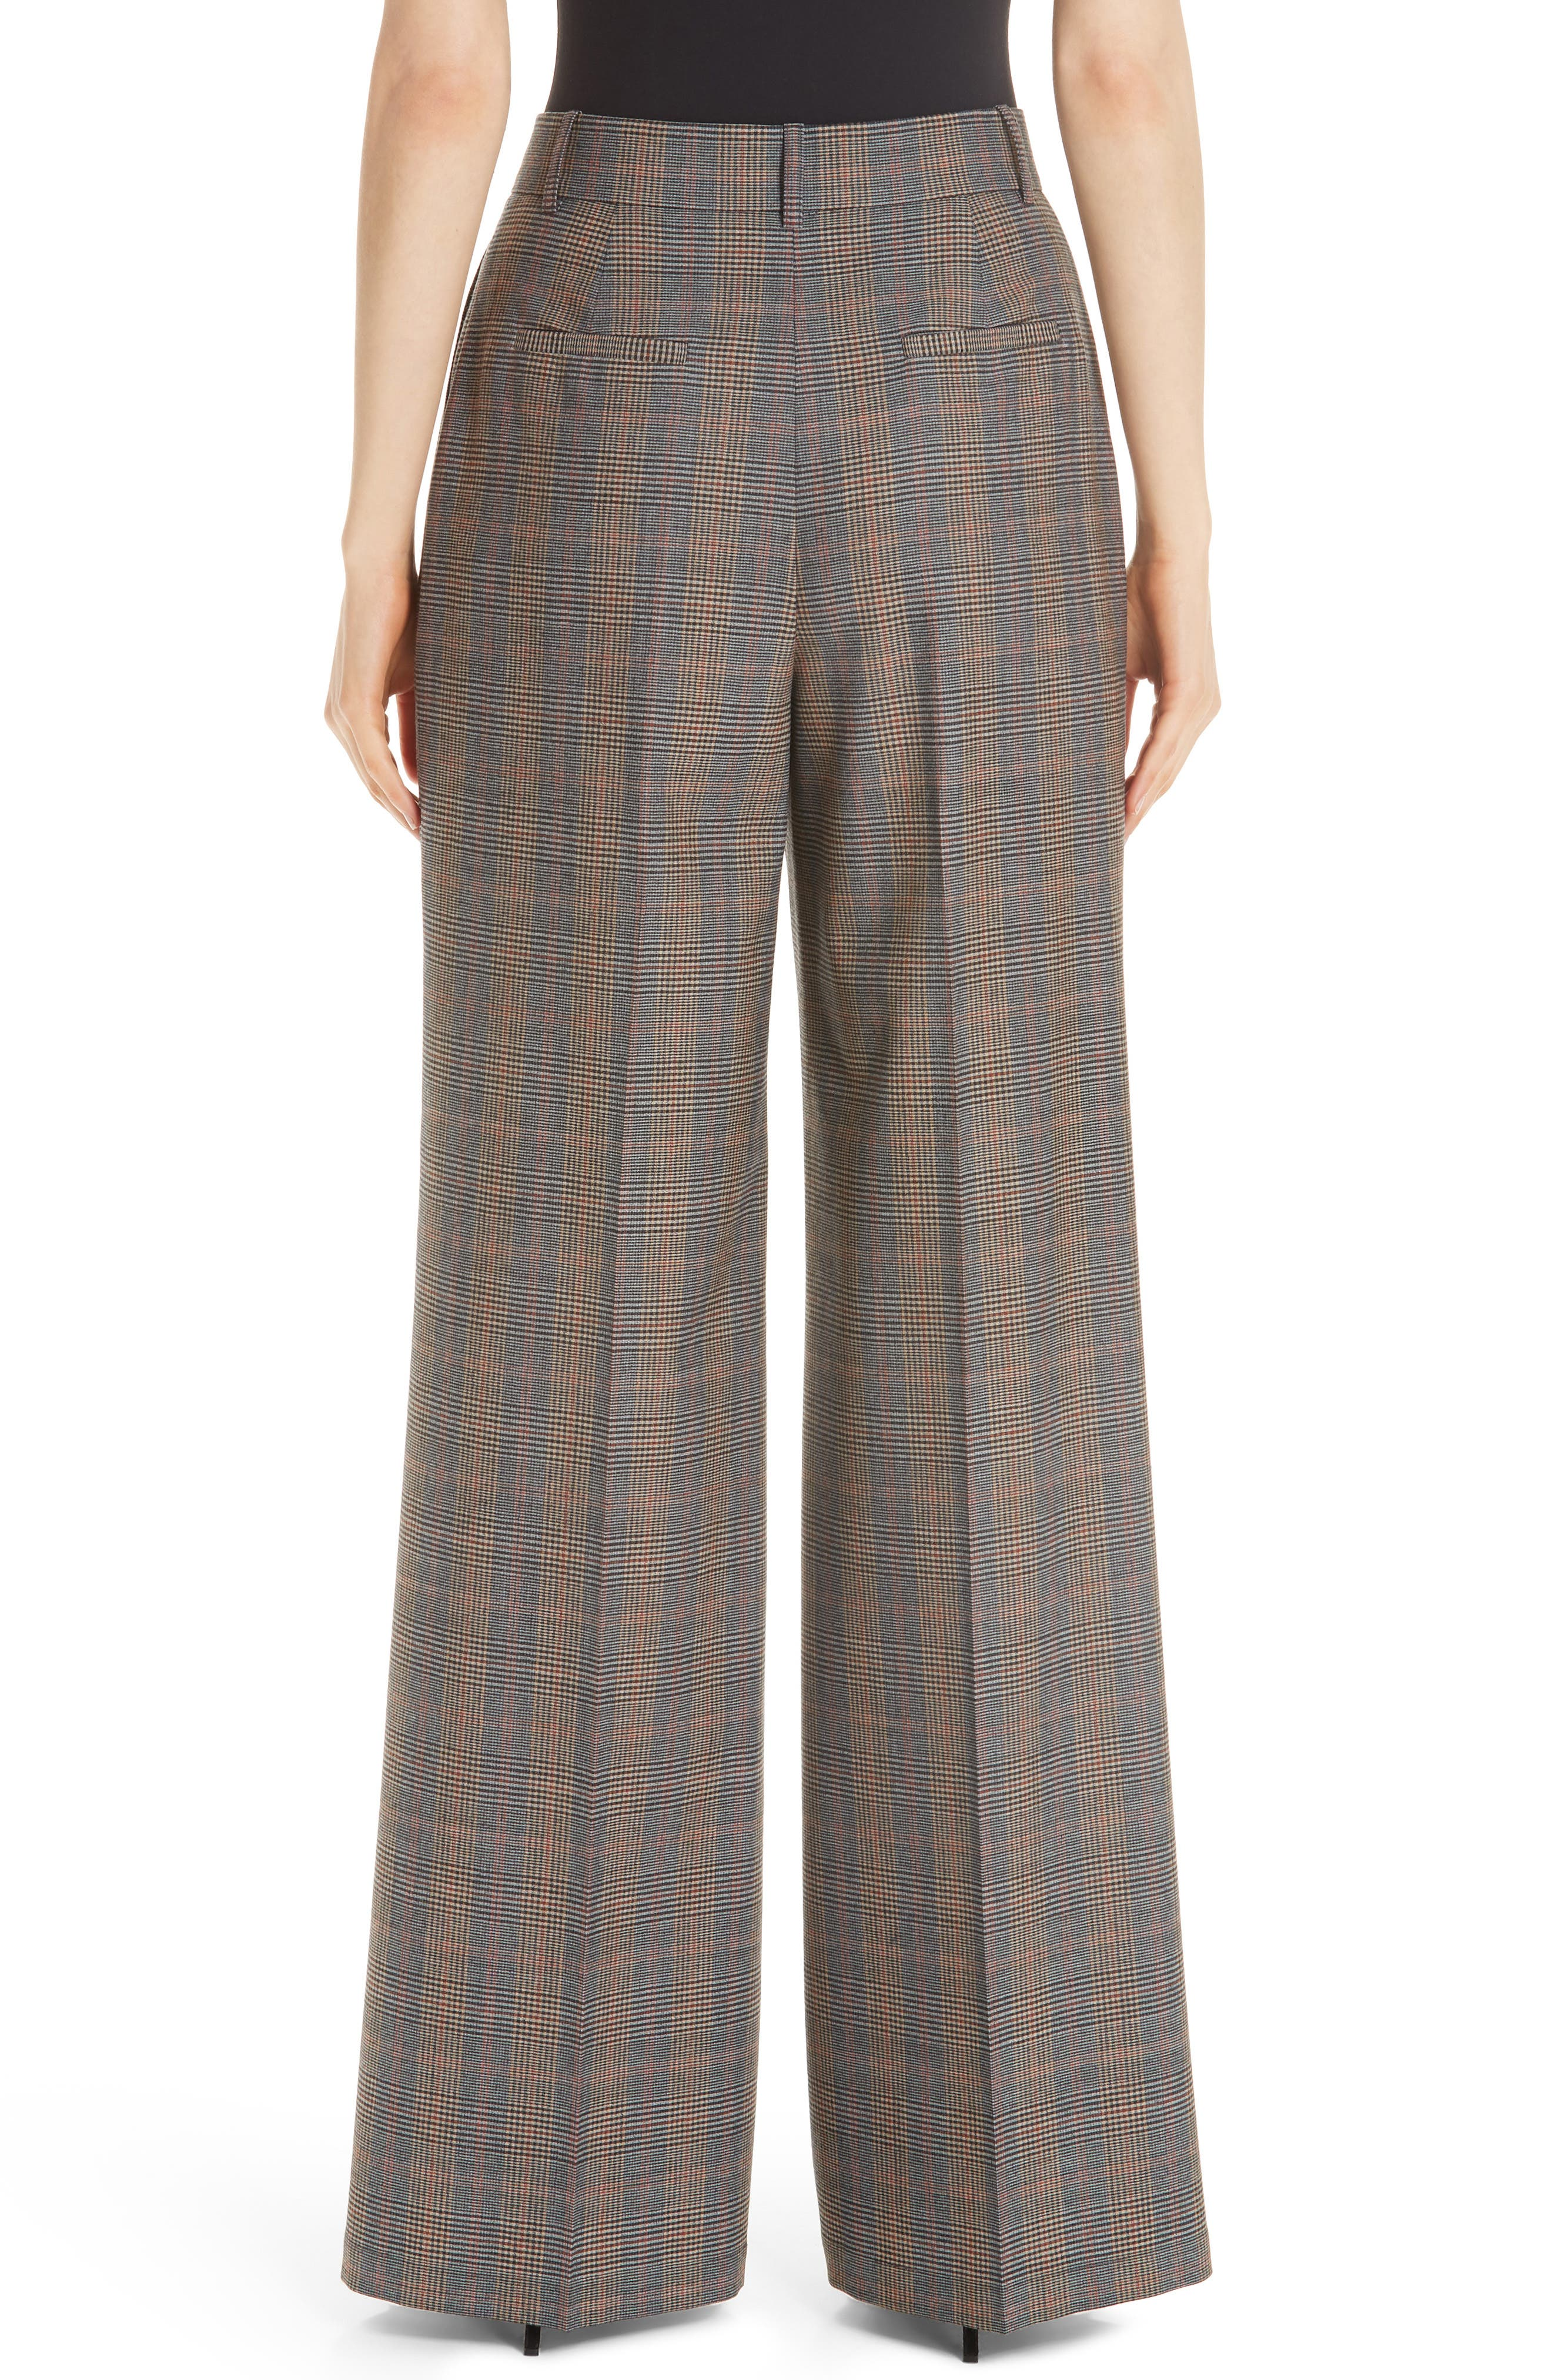 Quincy Stretch Wool Pants,                             Alternate thumbnail 2, color,                             SUNSTONE MULTI